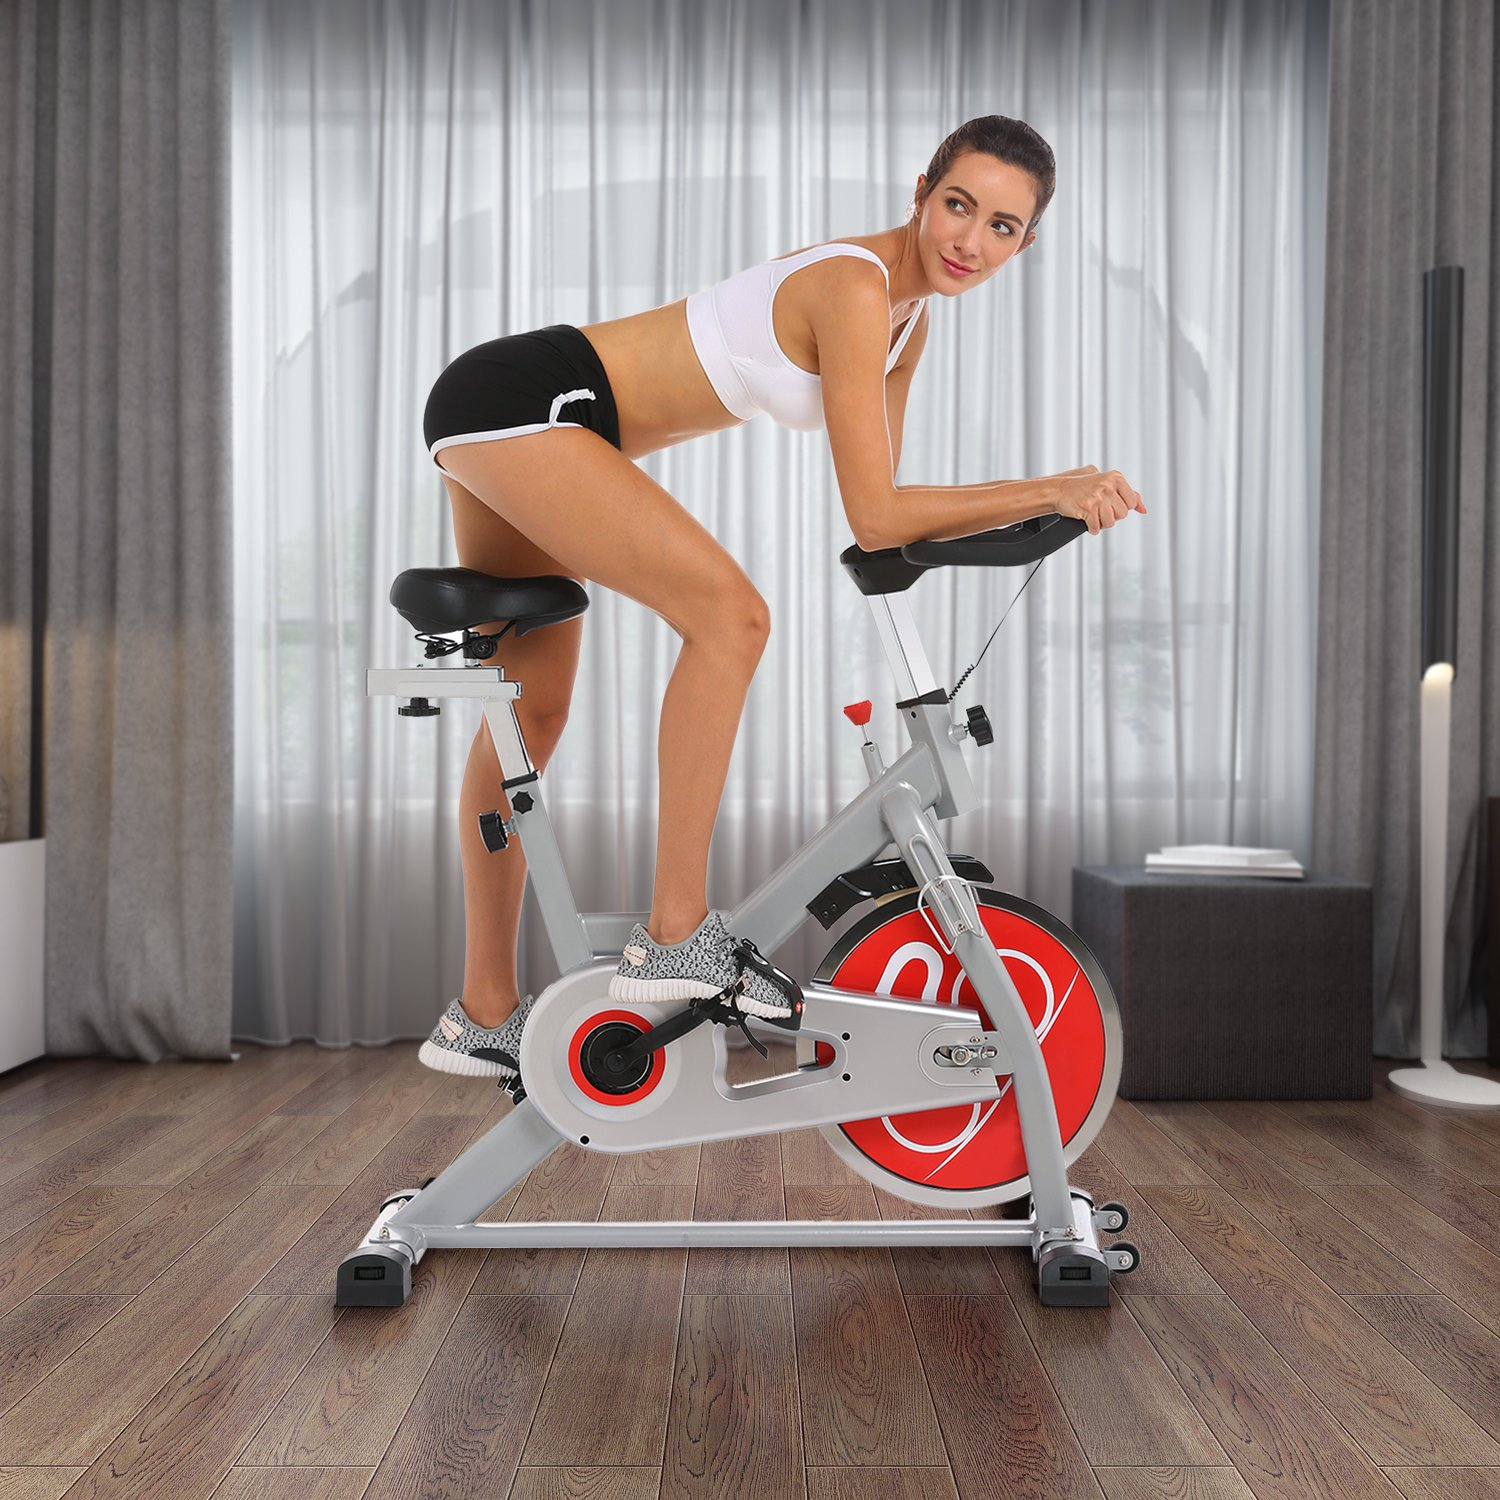 ANCHEER Indoor Cycling Bike, Belt Drive Indoor Exercise Bike with 49LBS Flywheel (Sliver) by ANCHEER (Image #3)